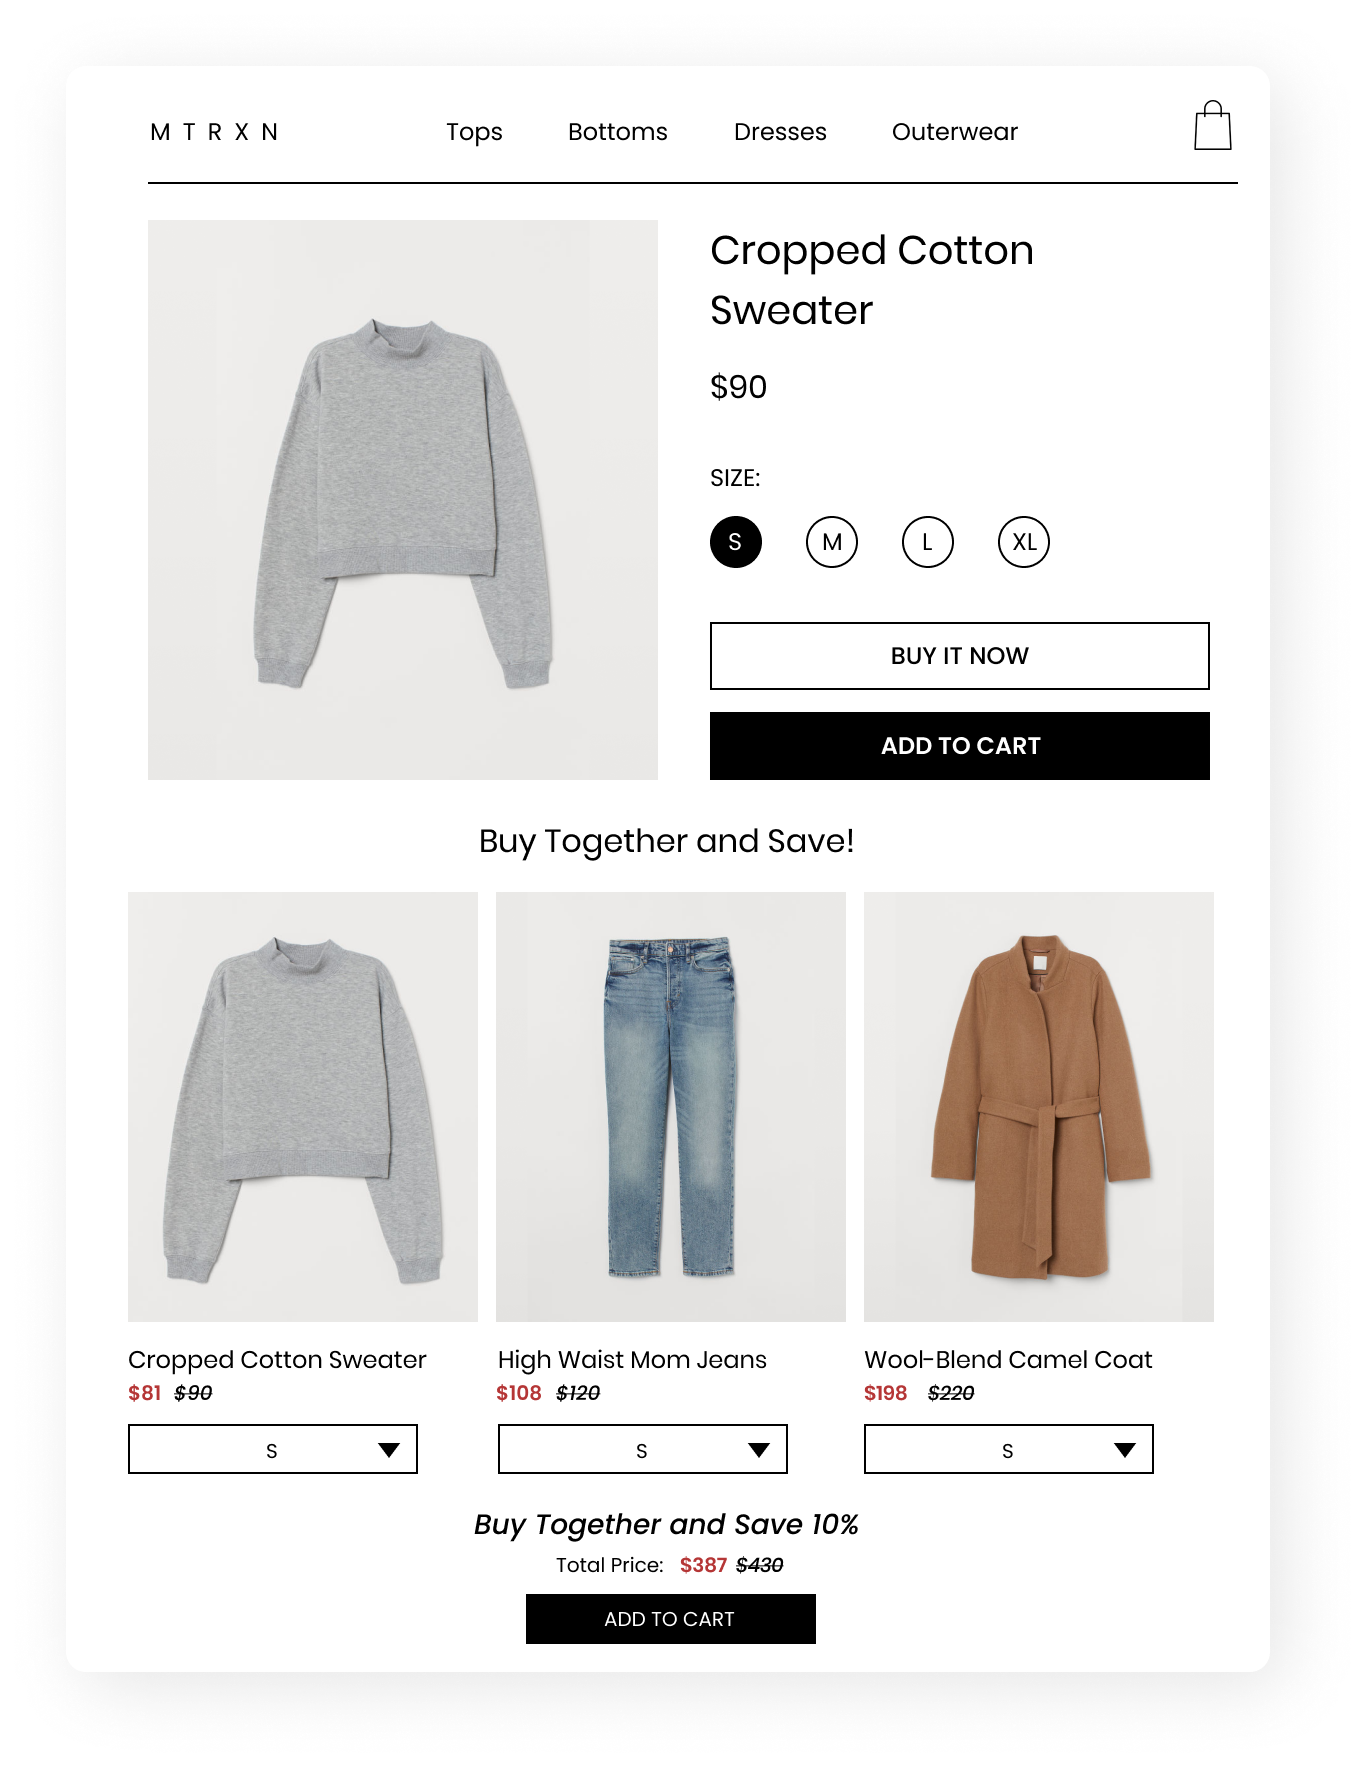 A screenshot showing a cropped cotton sweater product detail page with a bundle widget, buy together and save 10%.